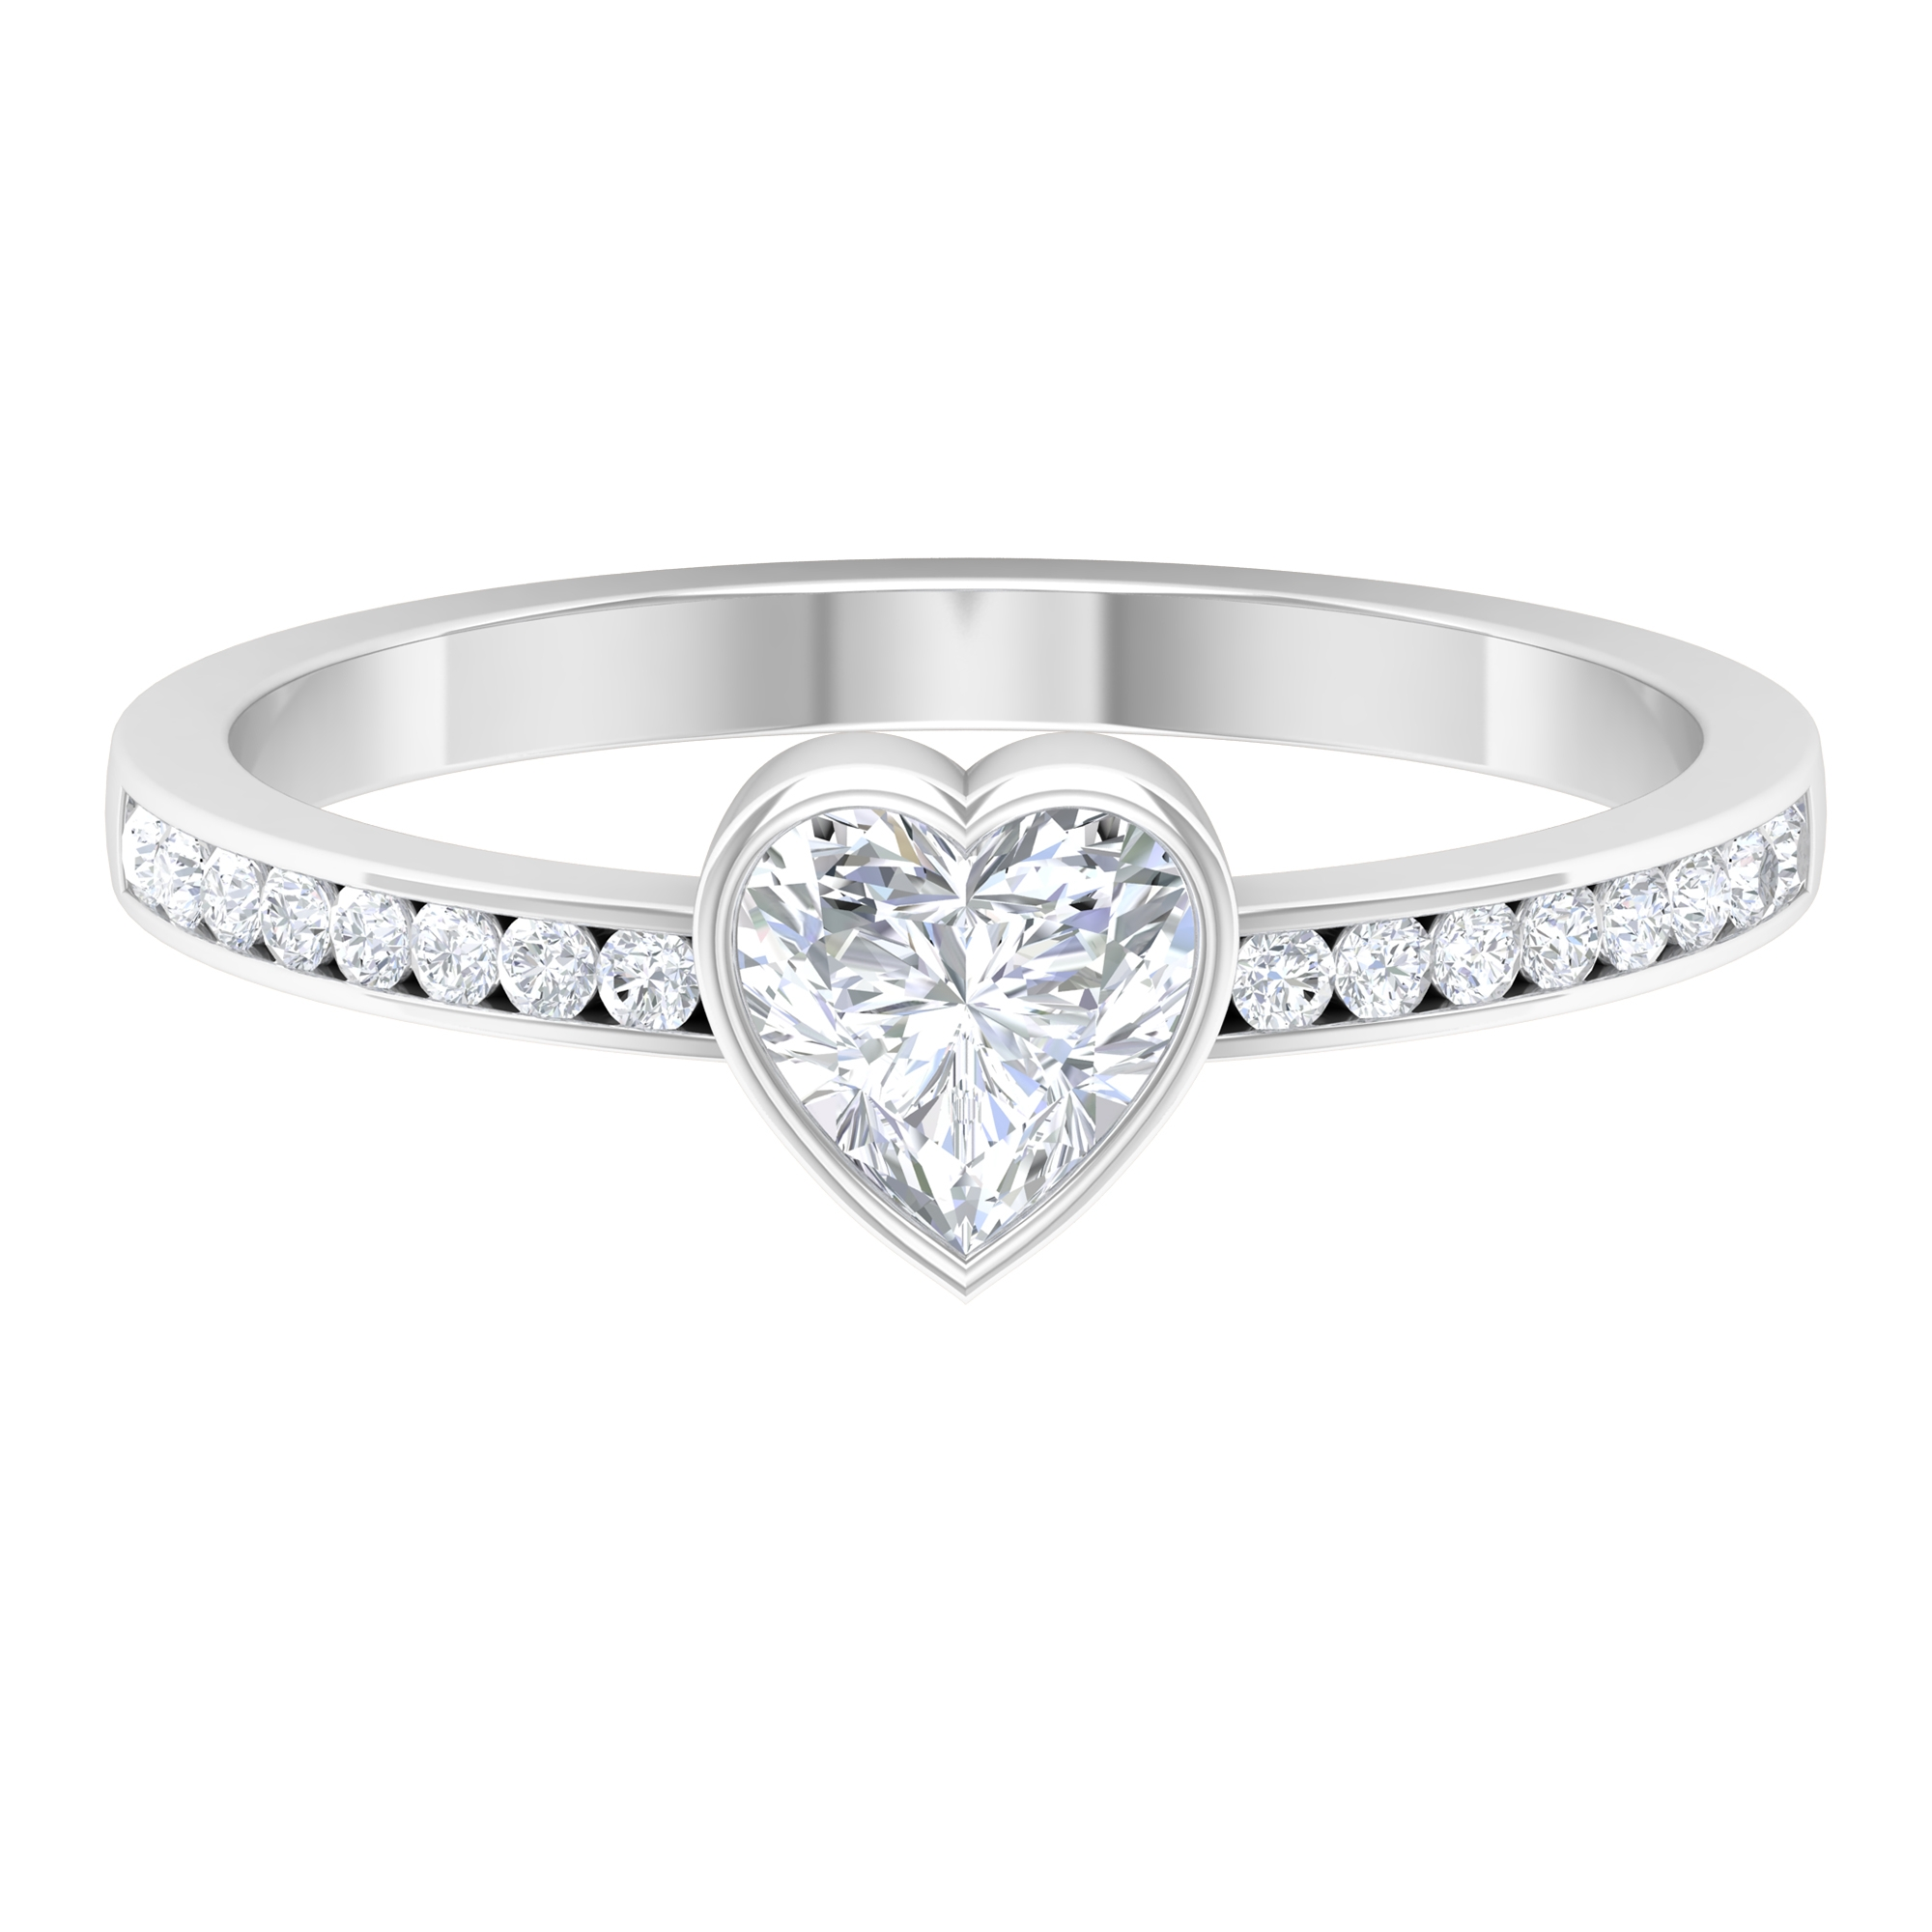 5.4X5.4 MM Heart Shape Diamond Solitaire Ring in Bezel Setting with Side Stones